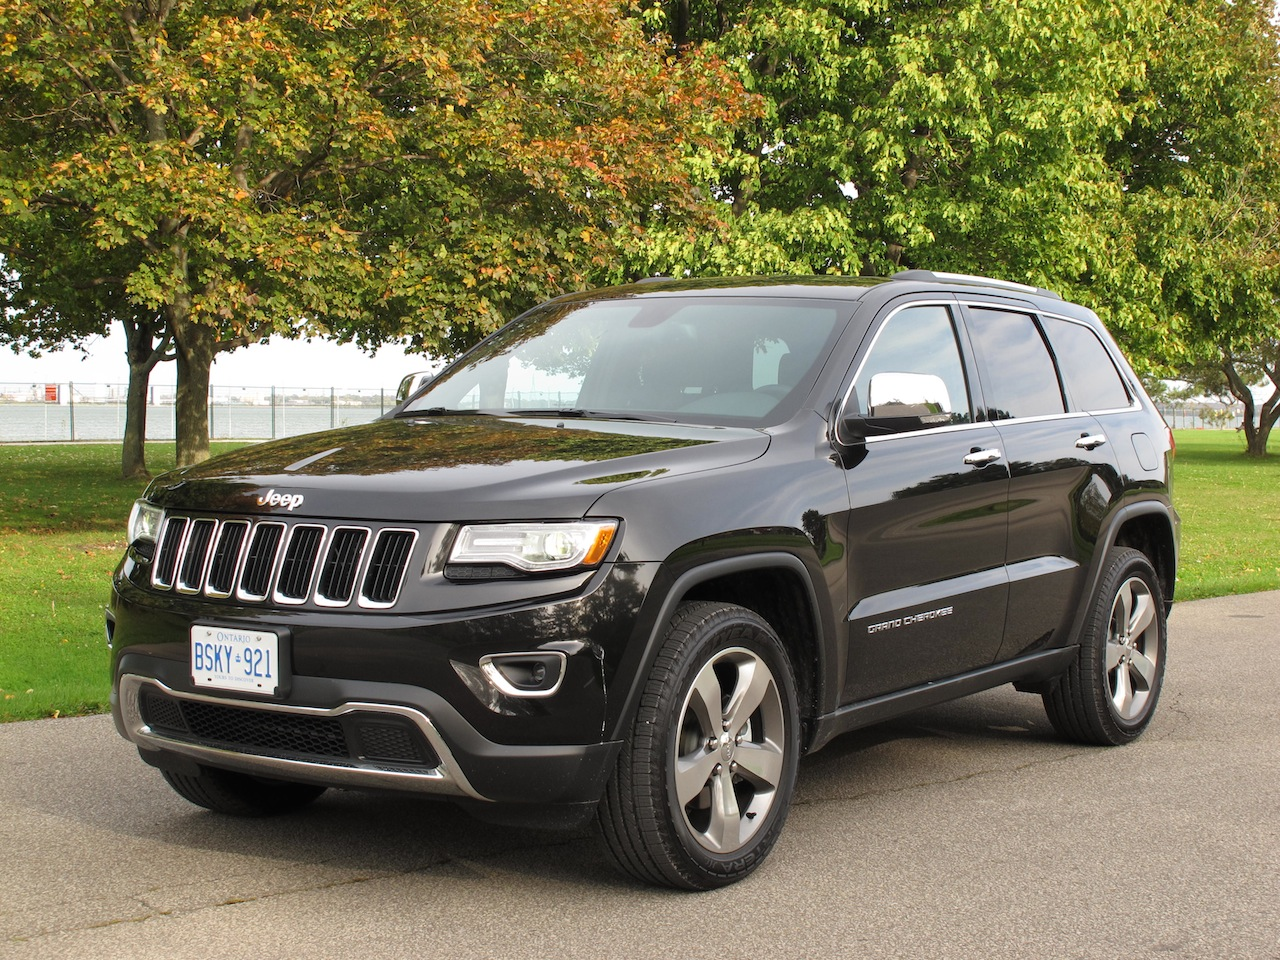 2014 jeep grand cherokee photo gallery cars photos test drives and reviews canadian auto. Black Bedroom Furniture Sets. Home Design Ideas